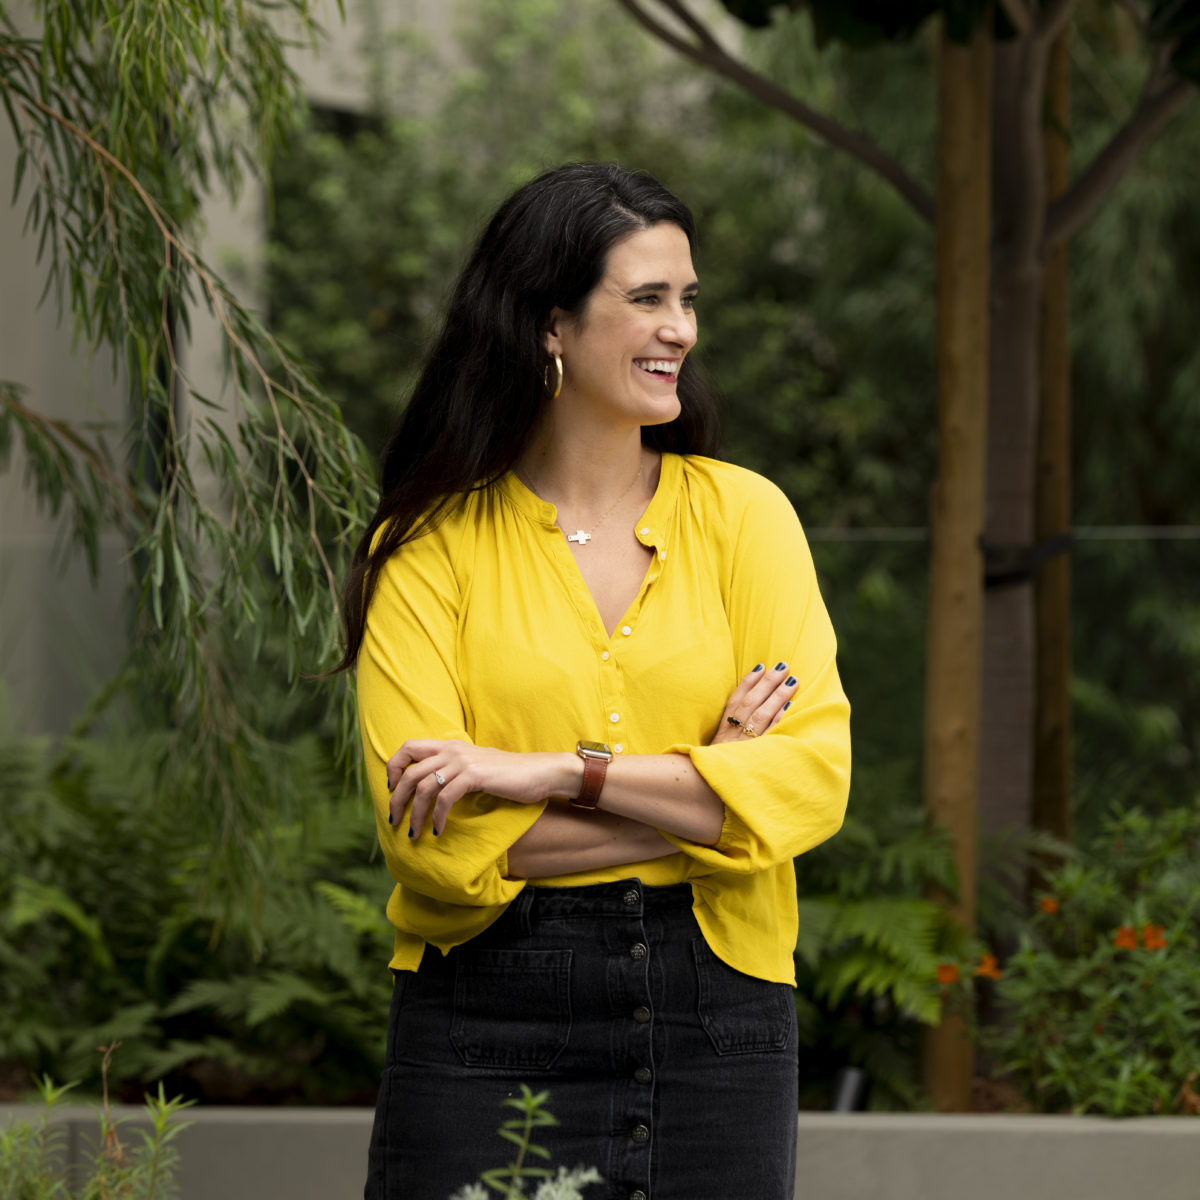 Micaela is white woman in her thirties. She has long brown hair, and is wearing a yellow blouse and black skirt. There is greenery surrounding her.